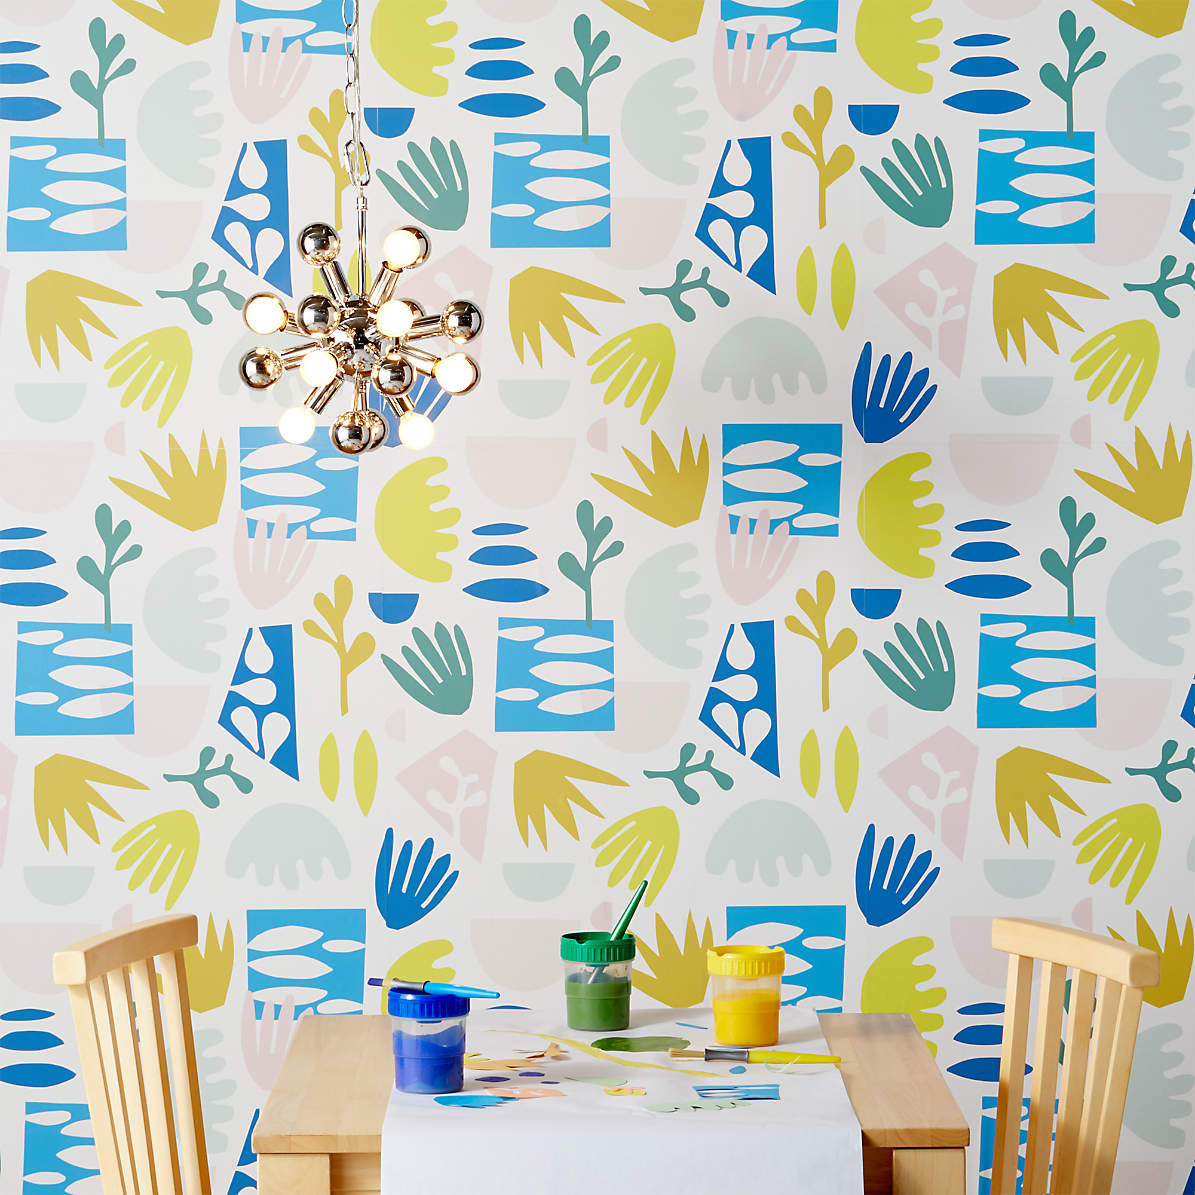 Chasing Paper Floral Cut Out Removable Wallpaper Reviews Crate And Barrel,Vacation Best Places To Travel In The Us